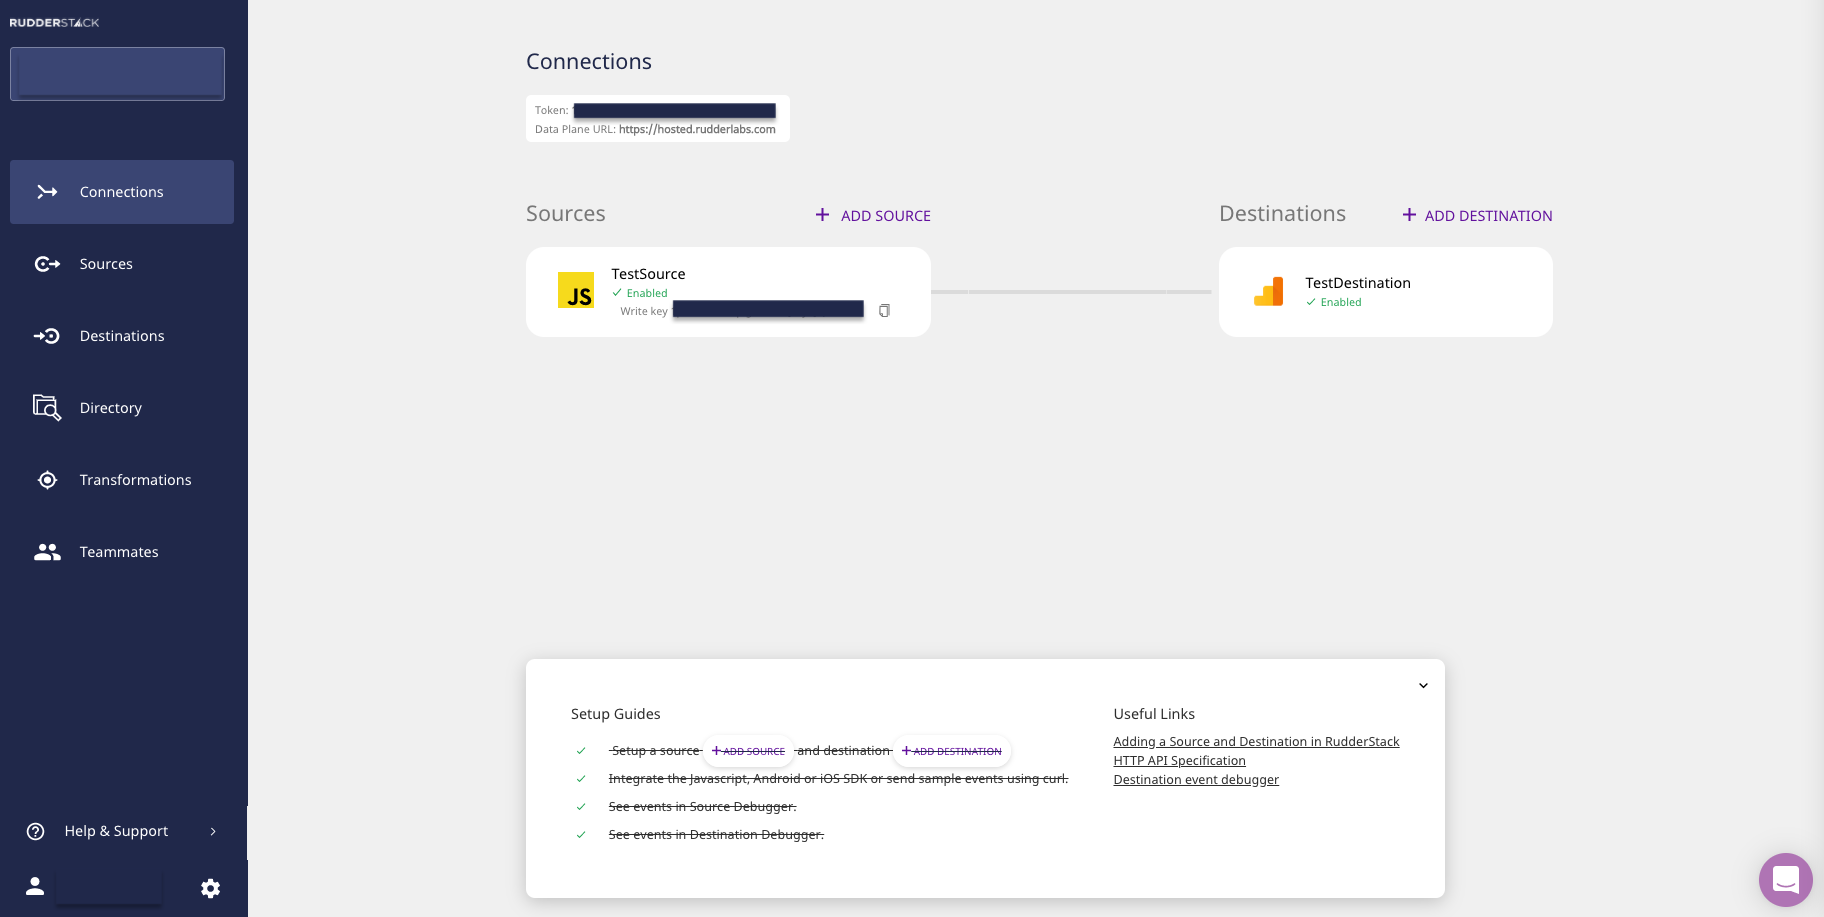 Connections Page